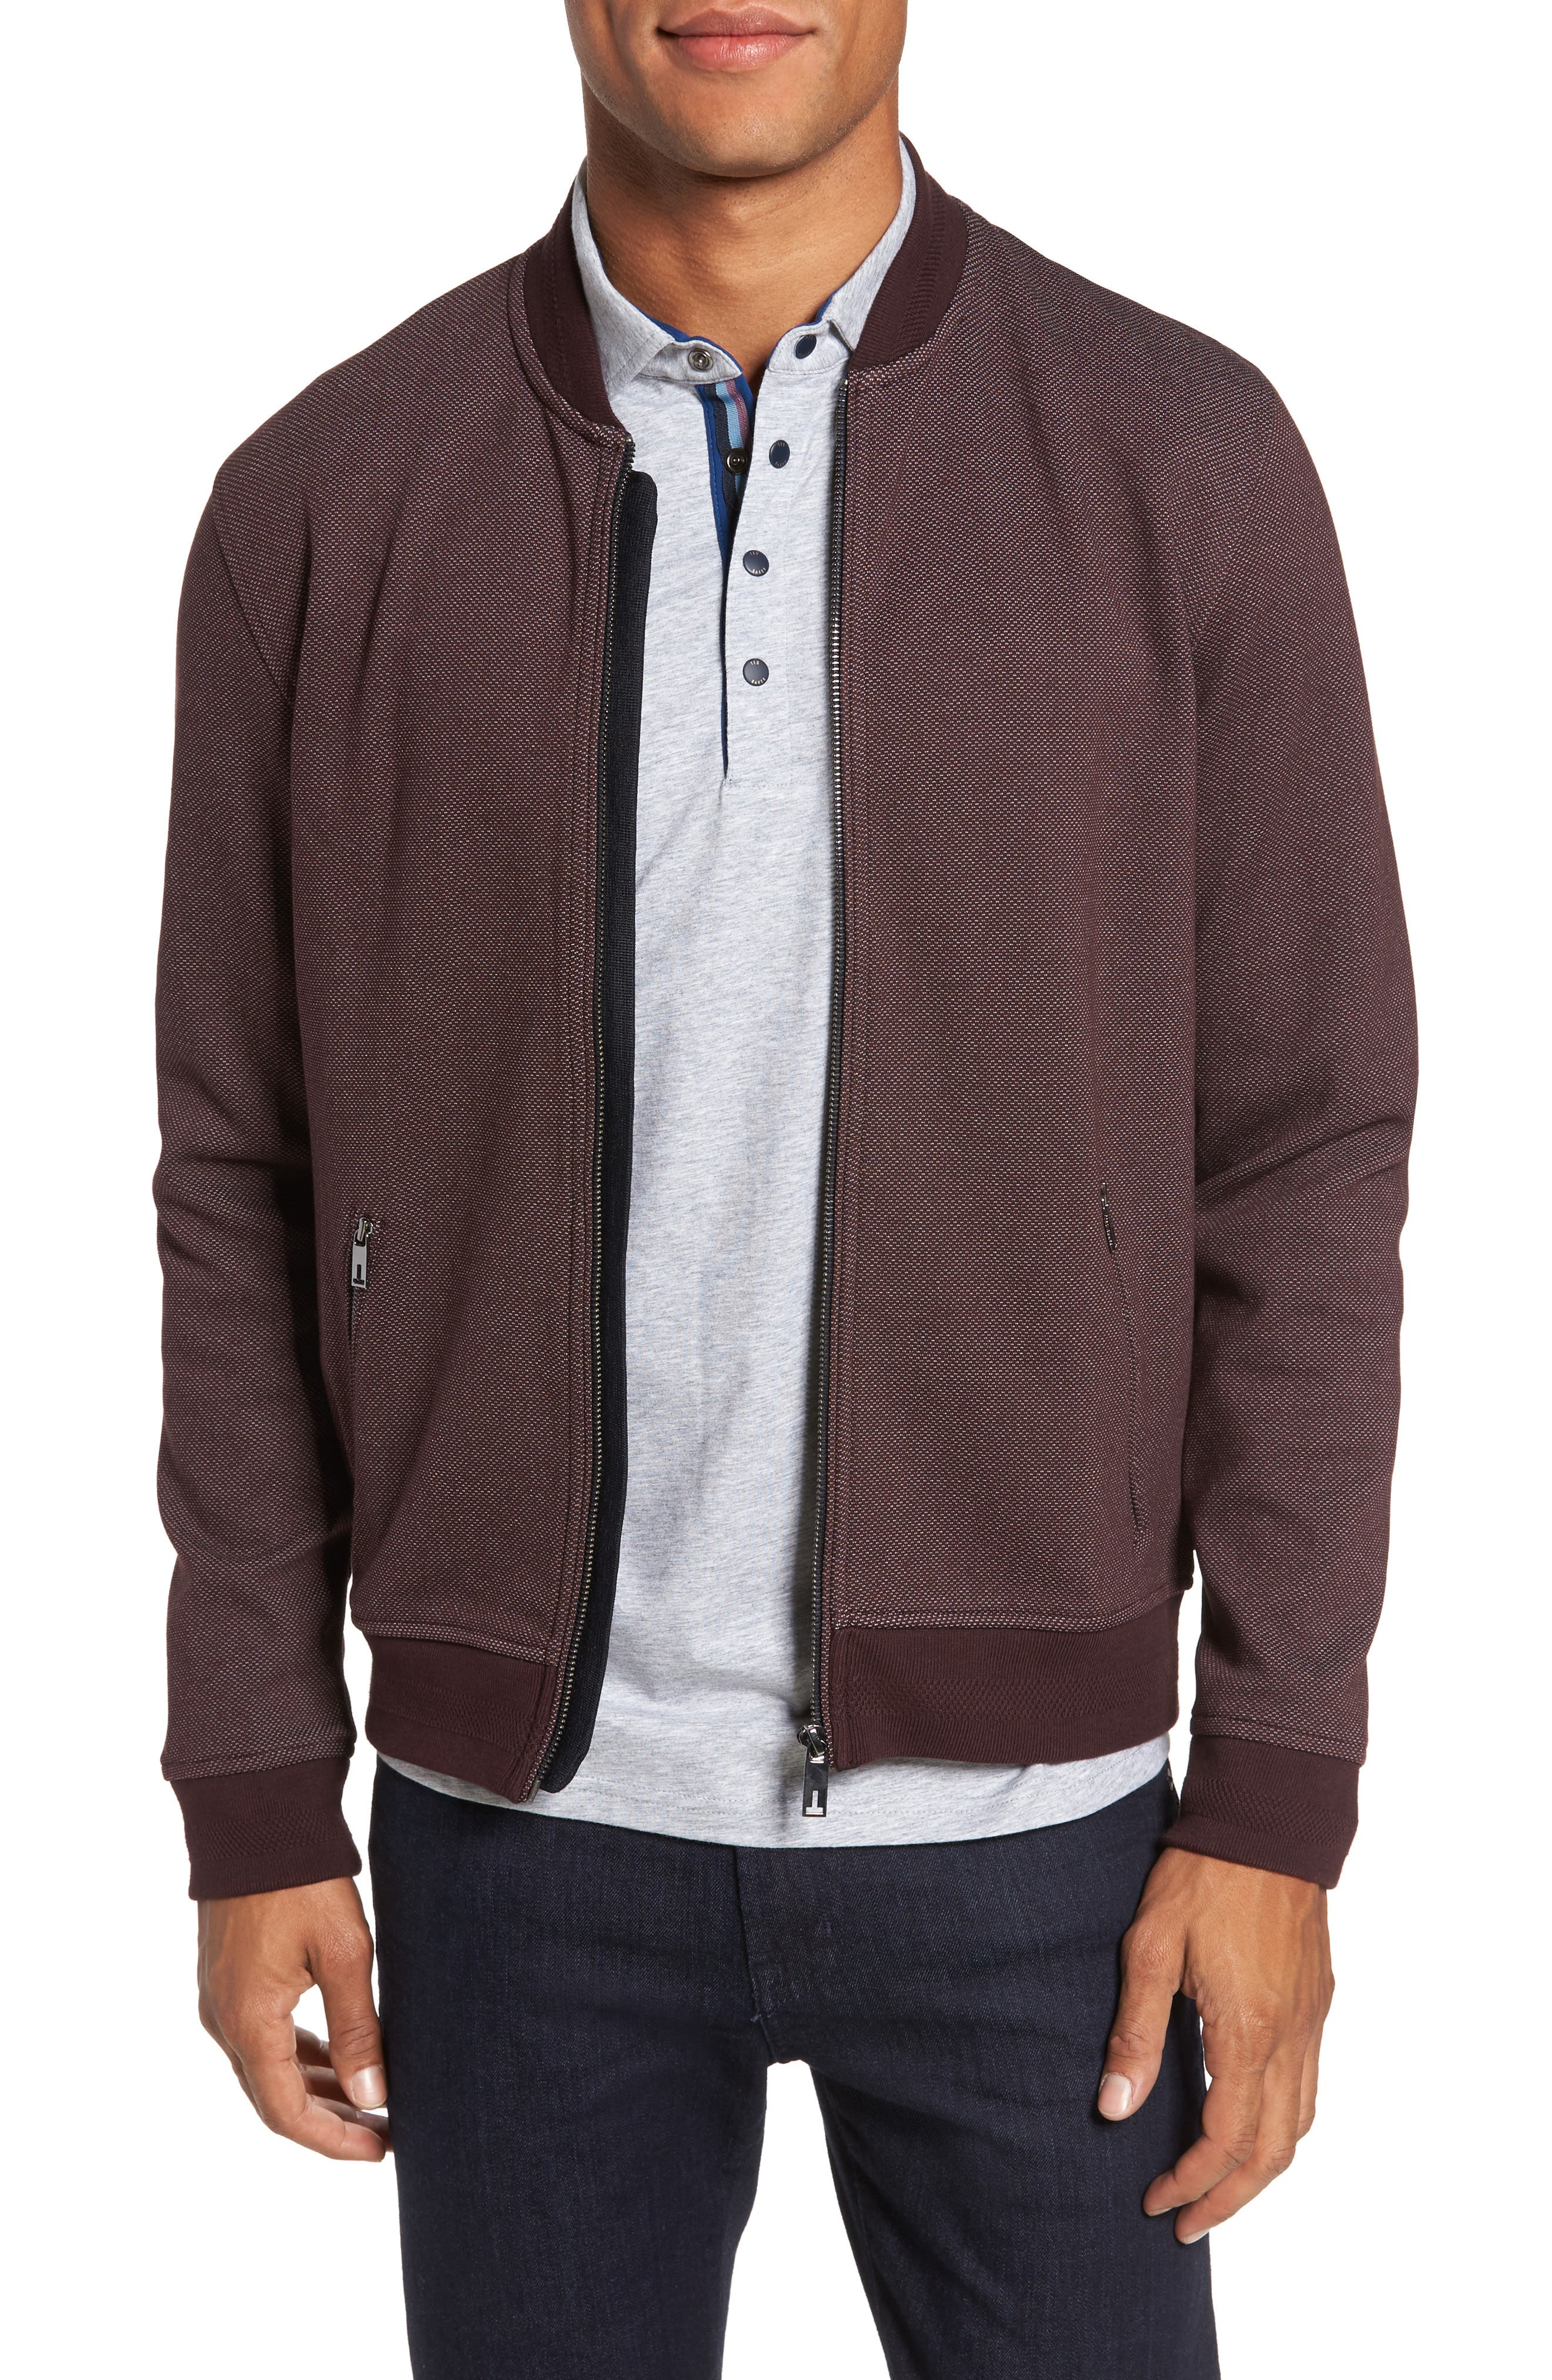 Fowler Jersey Bomber Jacket,                         Main,                         color, Dark Red